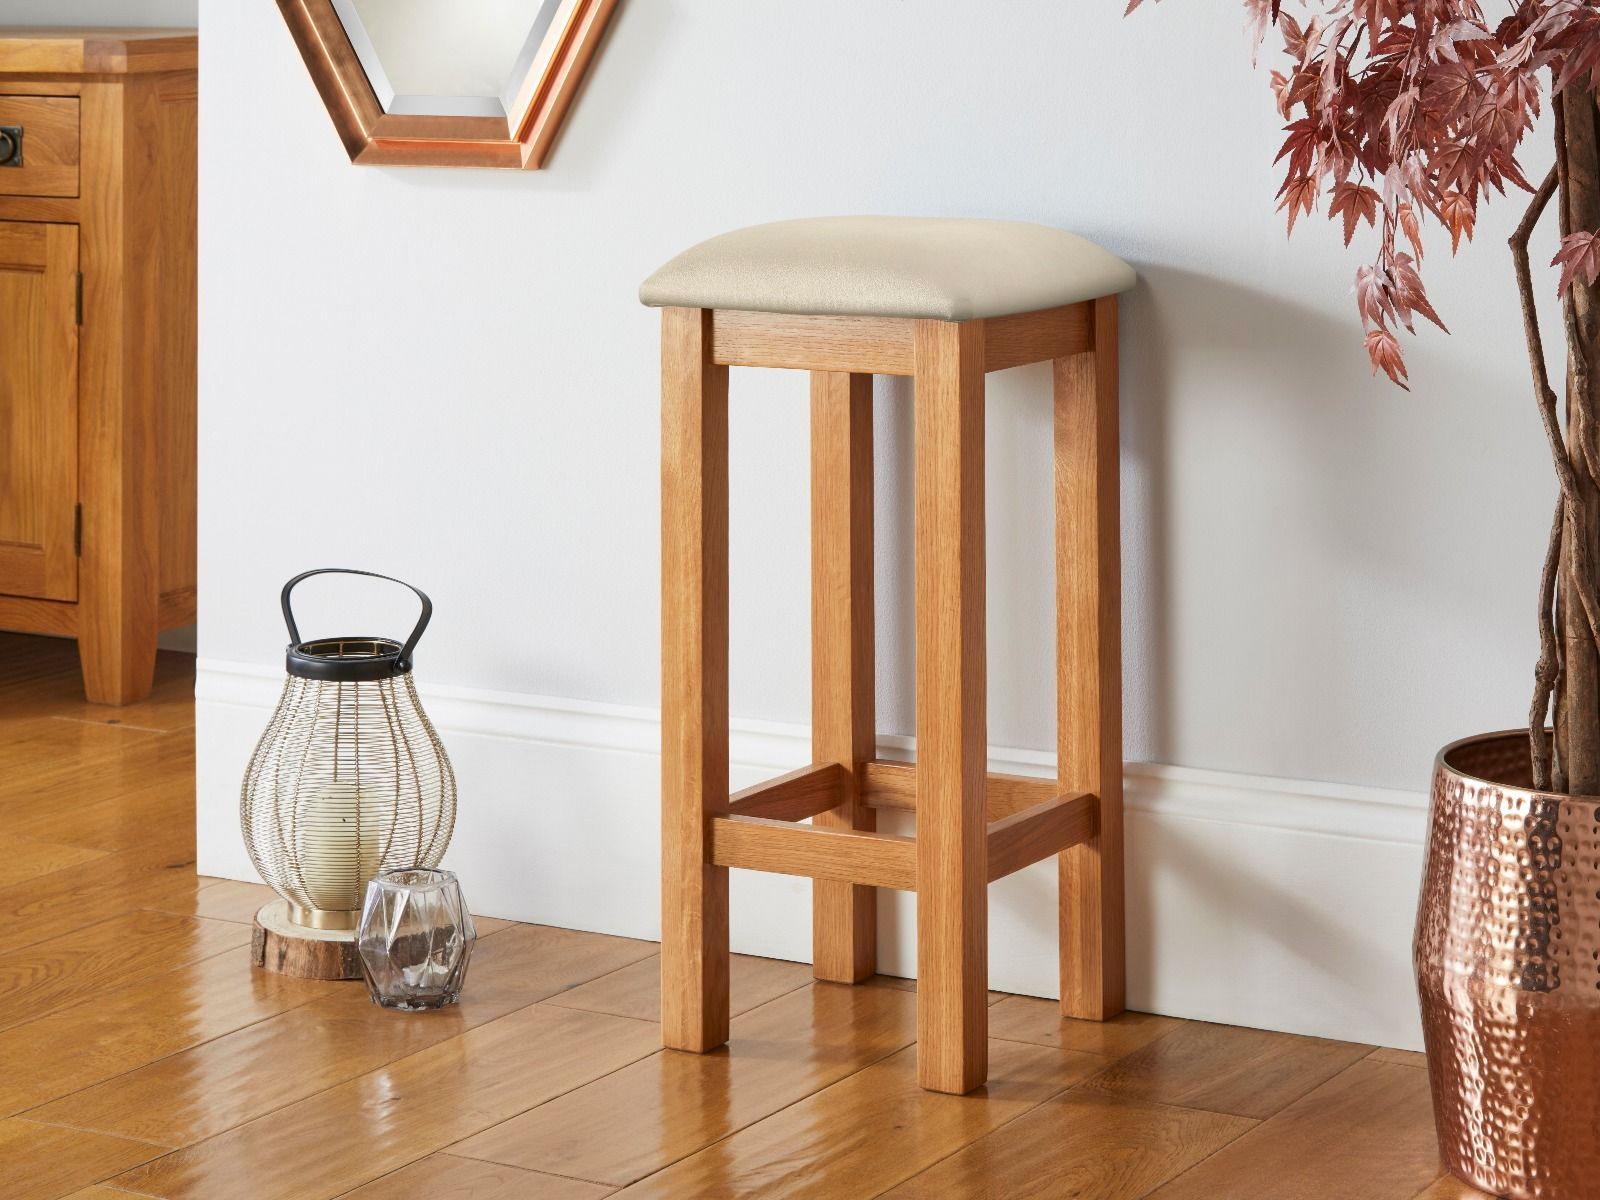 Baltic Solid Oak Cream Leather Small Kitchen Bar Stool   AUGUST MEGA DEAL